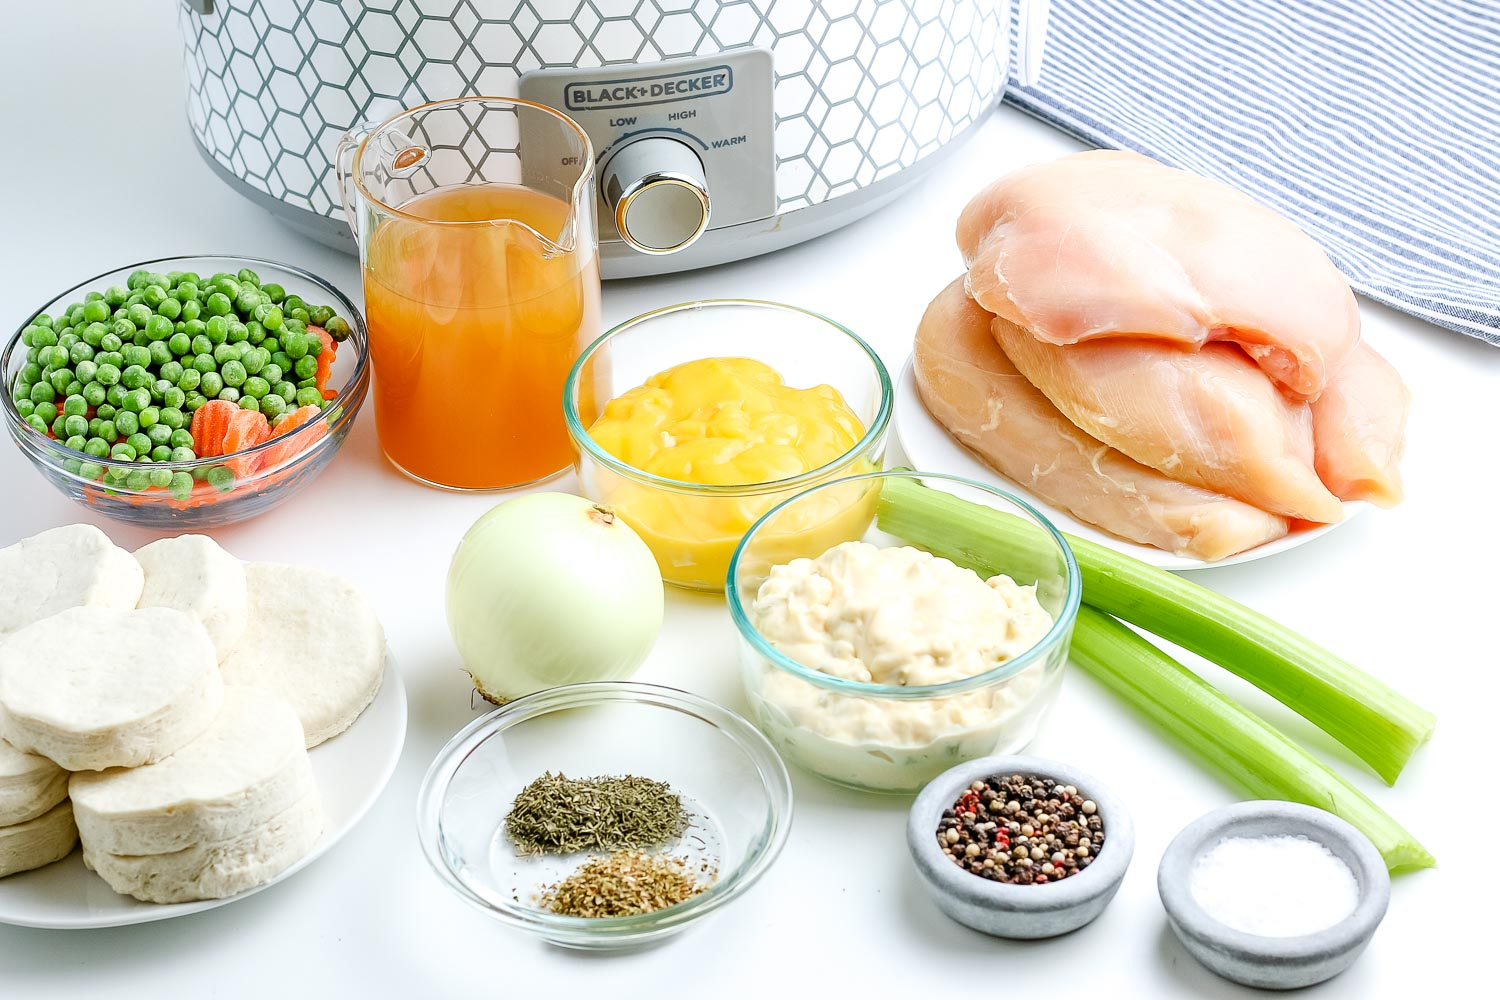 All of the ingredients needed to make this Crockpot Chicken and Dumplings recipe.